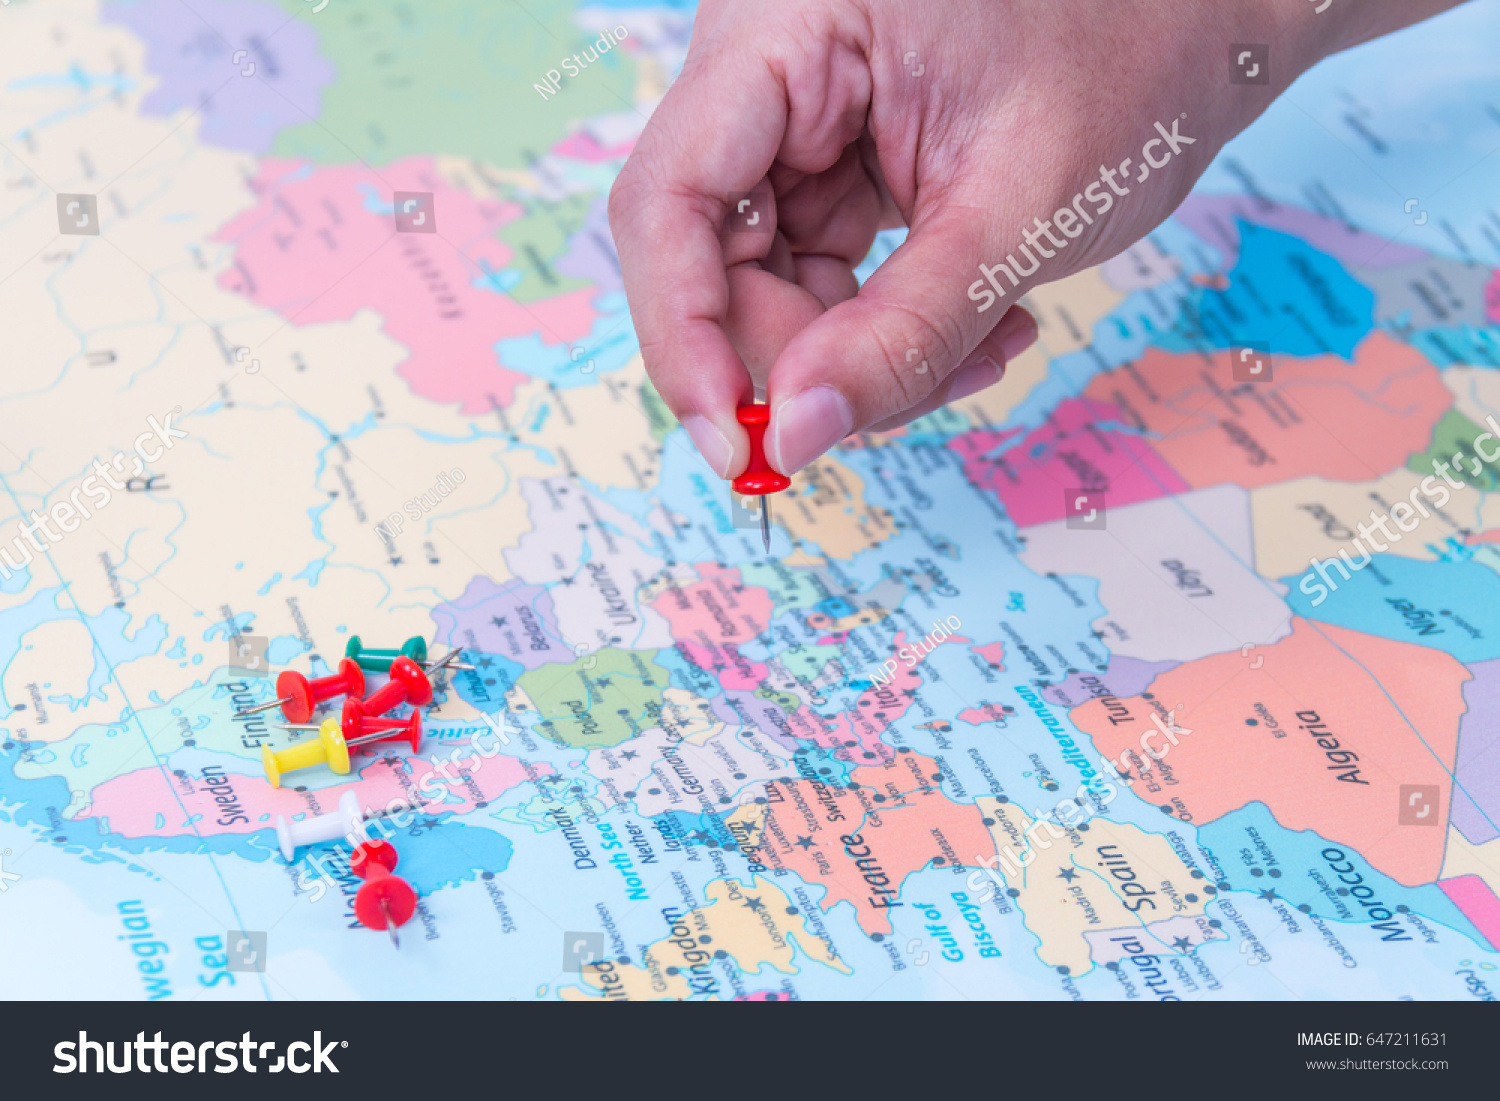 Pins Marking Location On Map Stock Photo (Edit Now) 647211631 ...